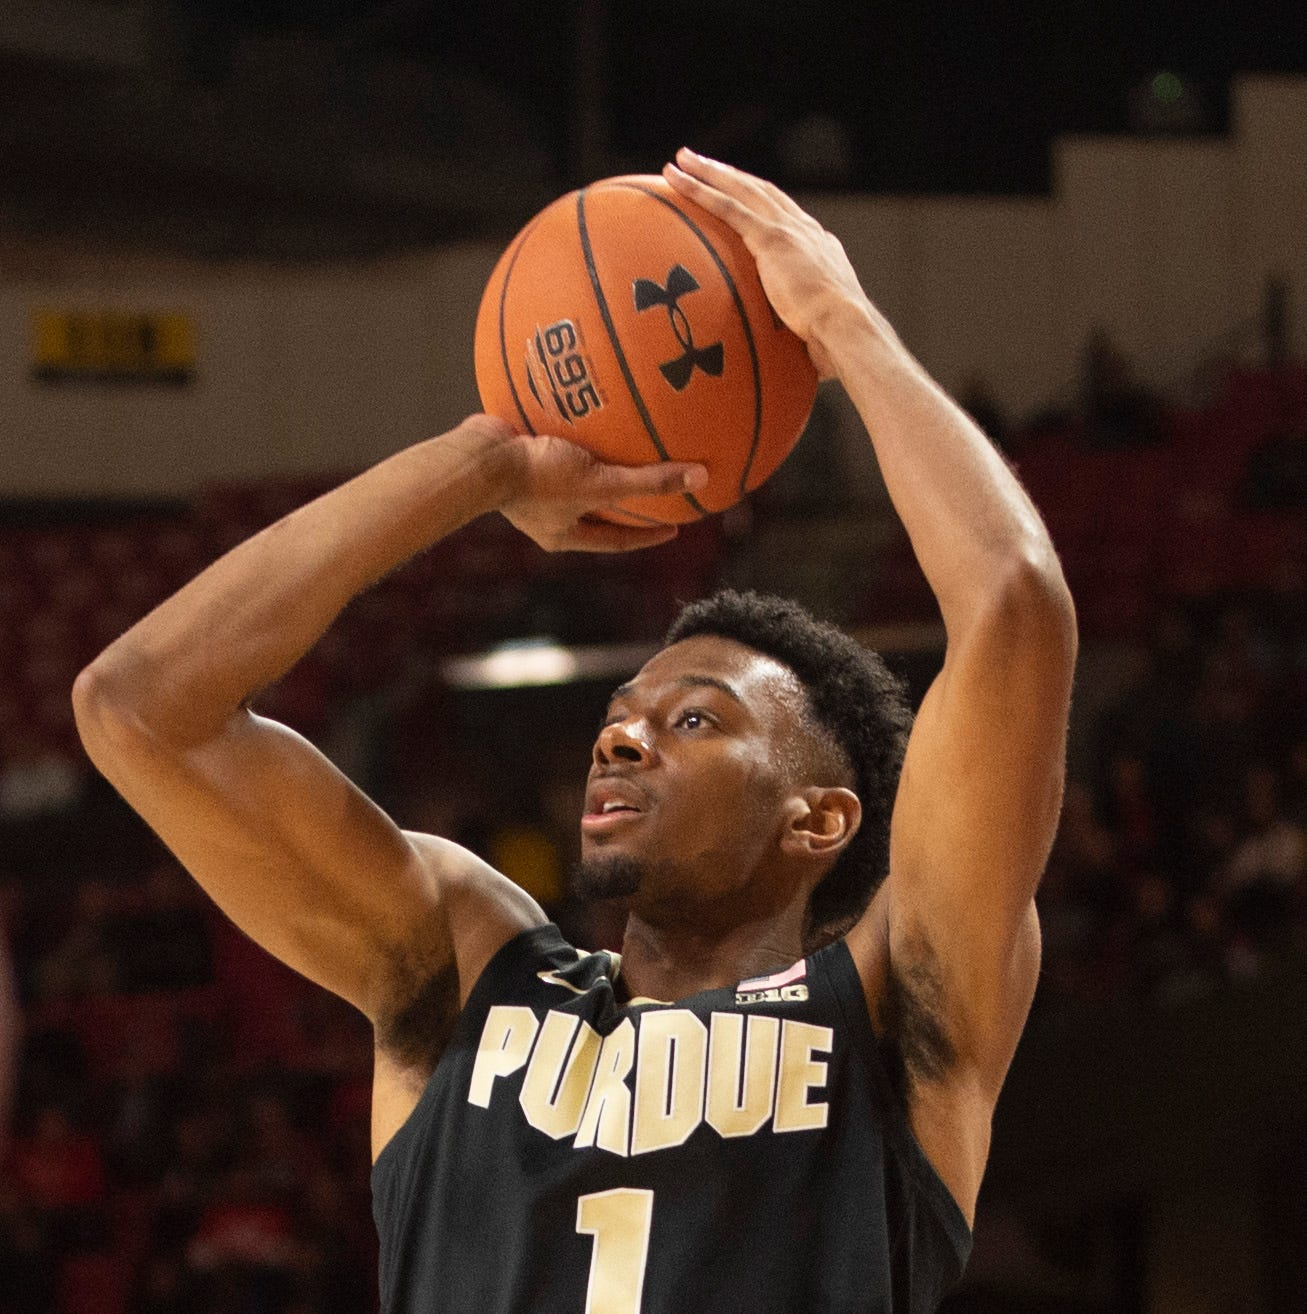 Purdue basketball will need another offseason adjustment to its 3-point heavy offense